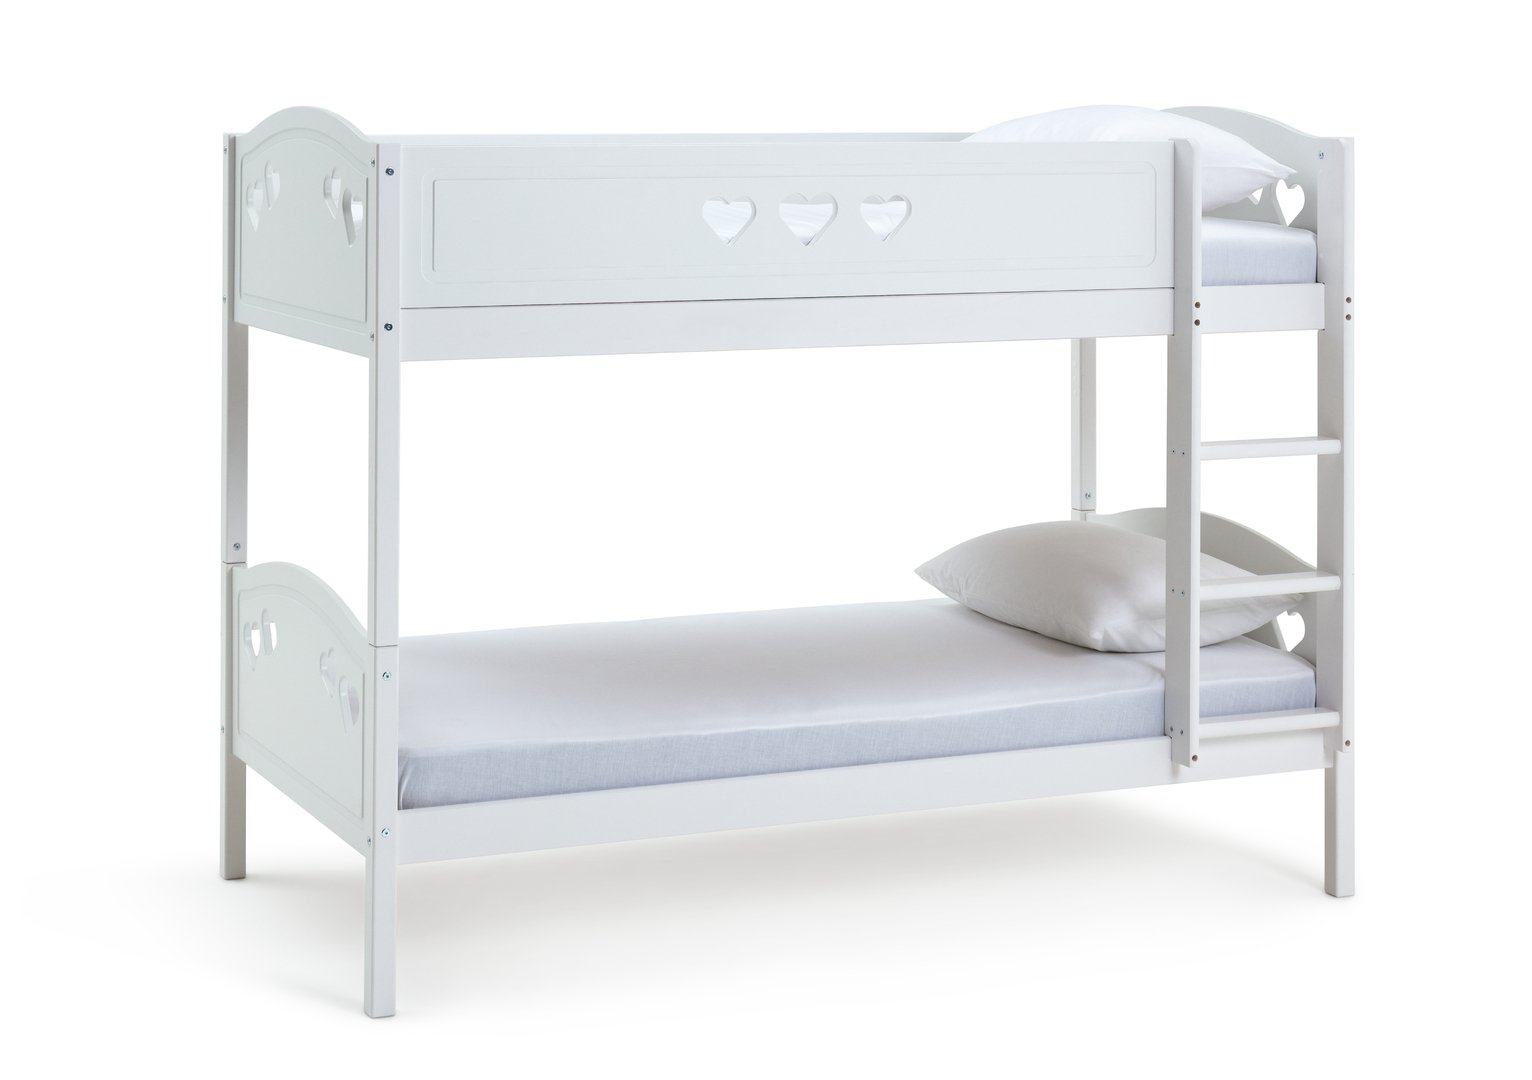 Argos Home Mia White Single Bunk Bed & 2 Kids Mattresses